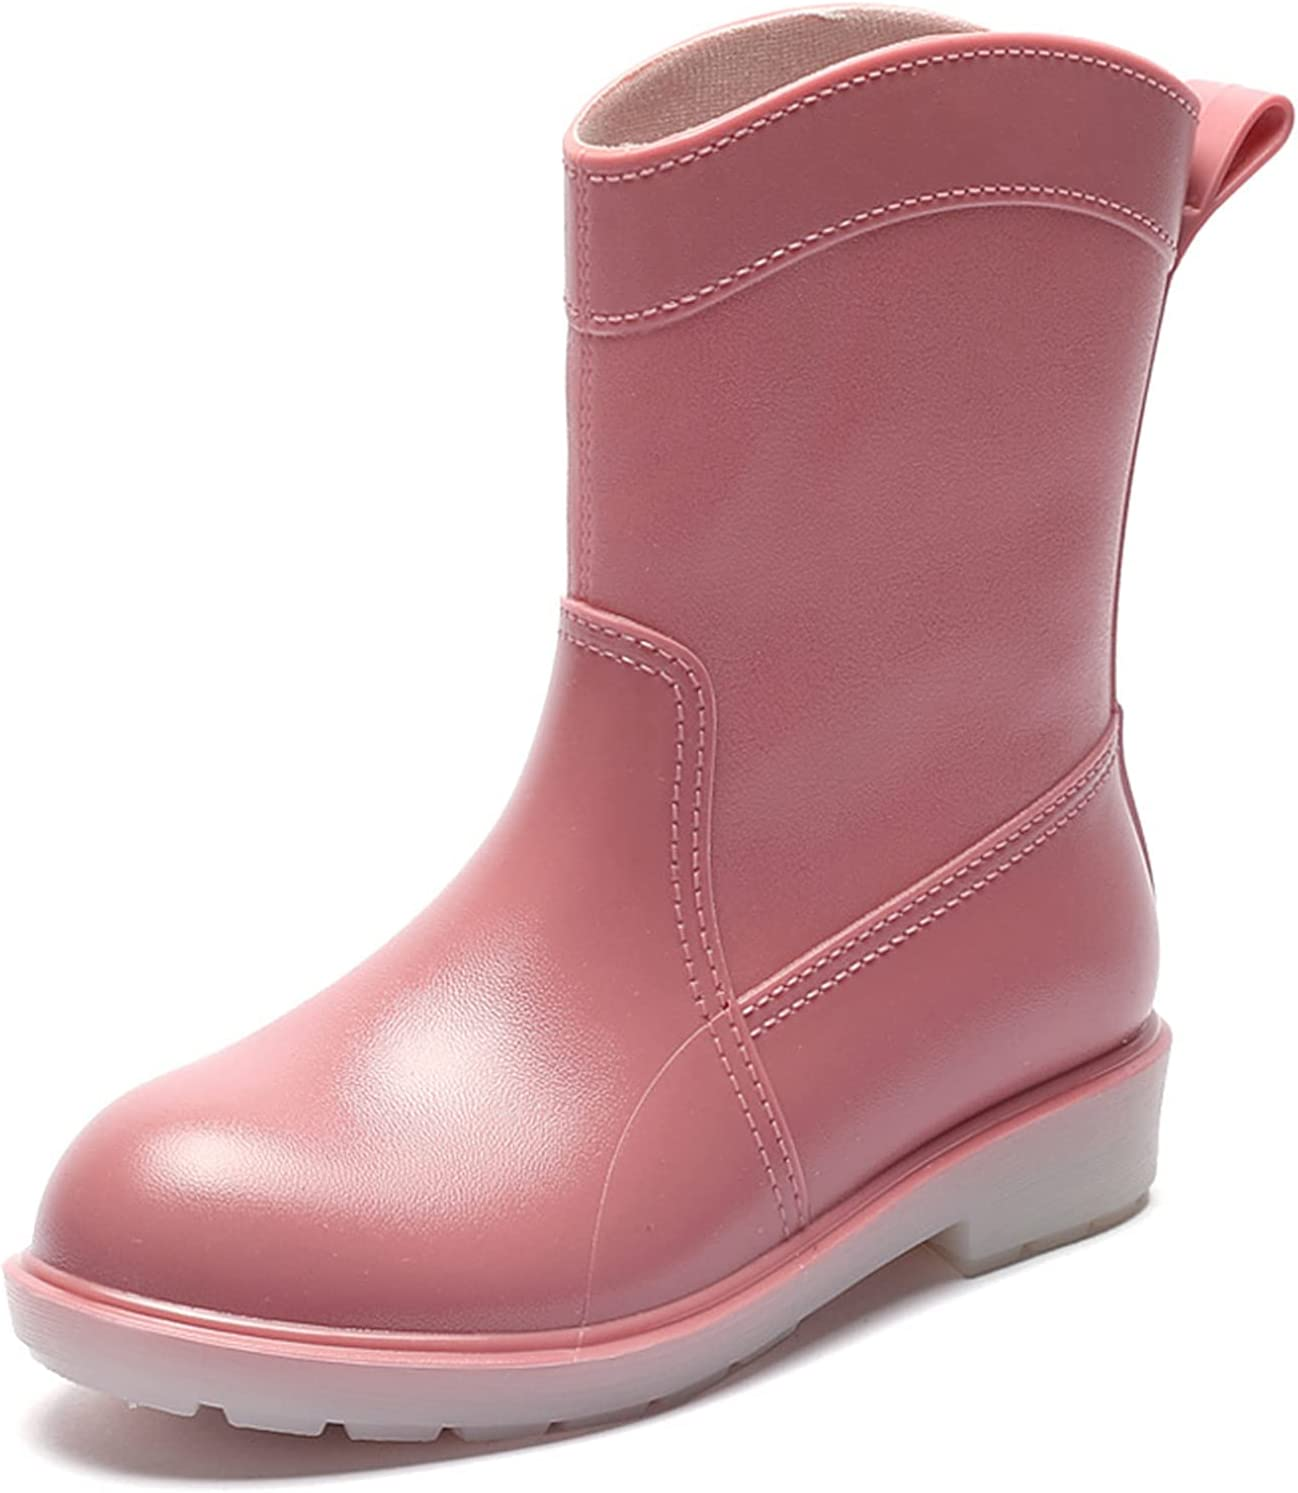 ZBRO Mid Calf Rain Boots Fashionable Comfortable Shoes Waterproof Non-Slip Boots for Women for Outdoor Camping Hiking